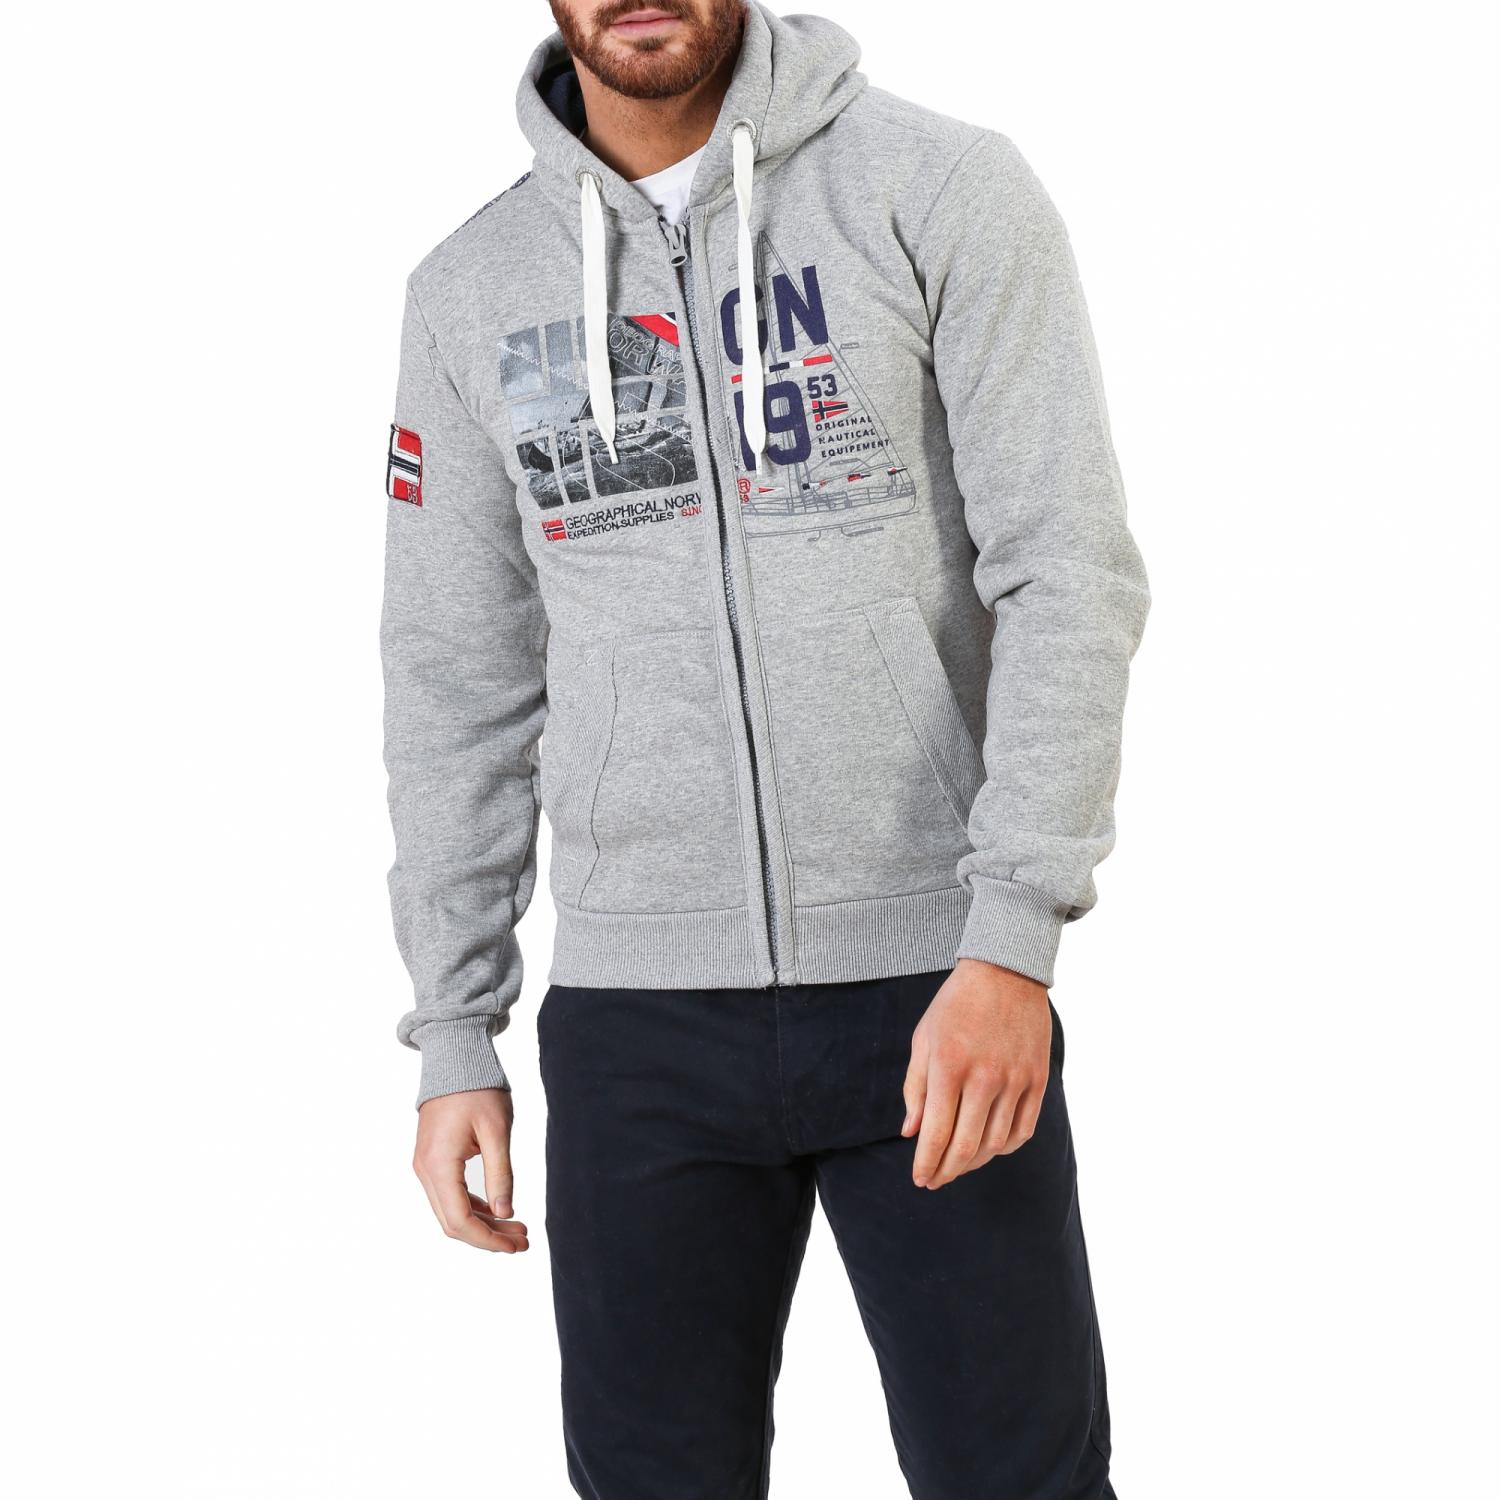 Geographical Norway Суетшърт С Качулка